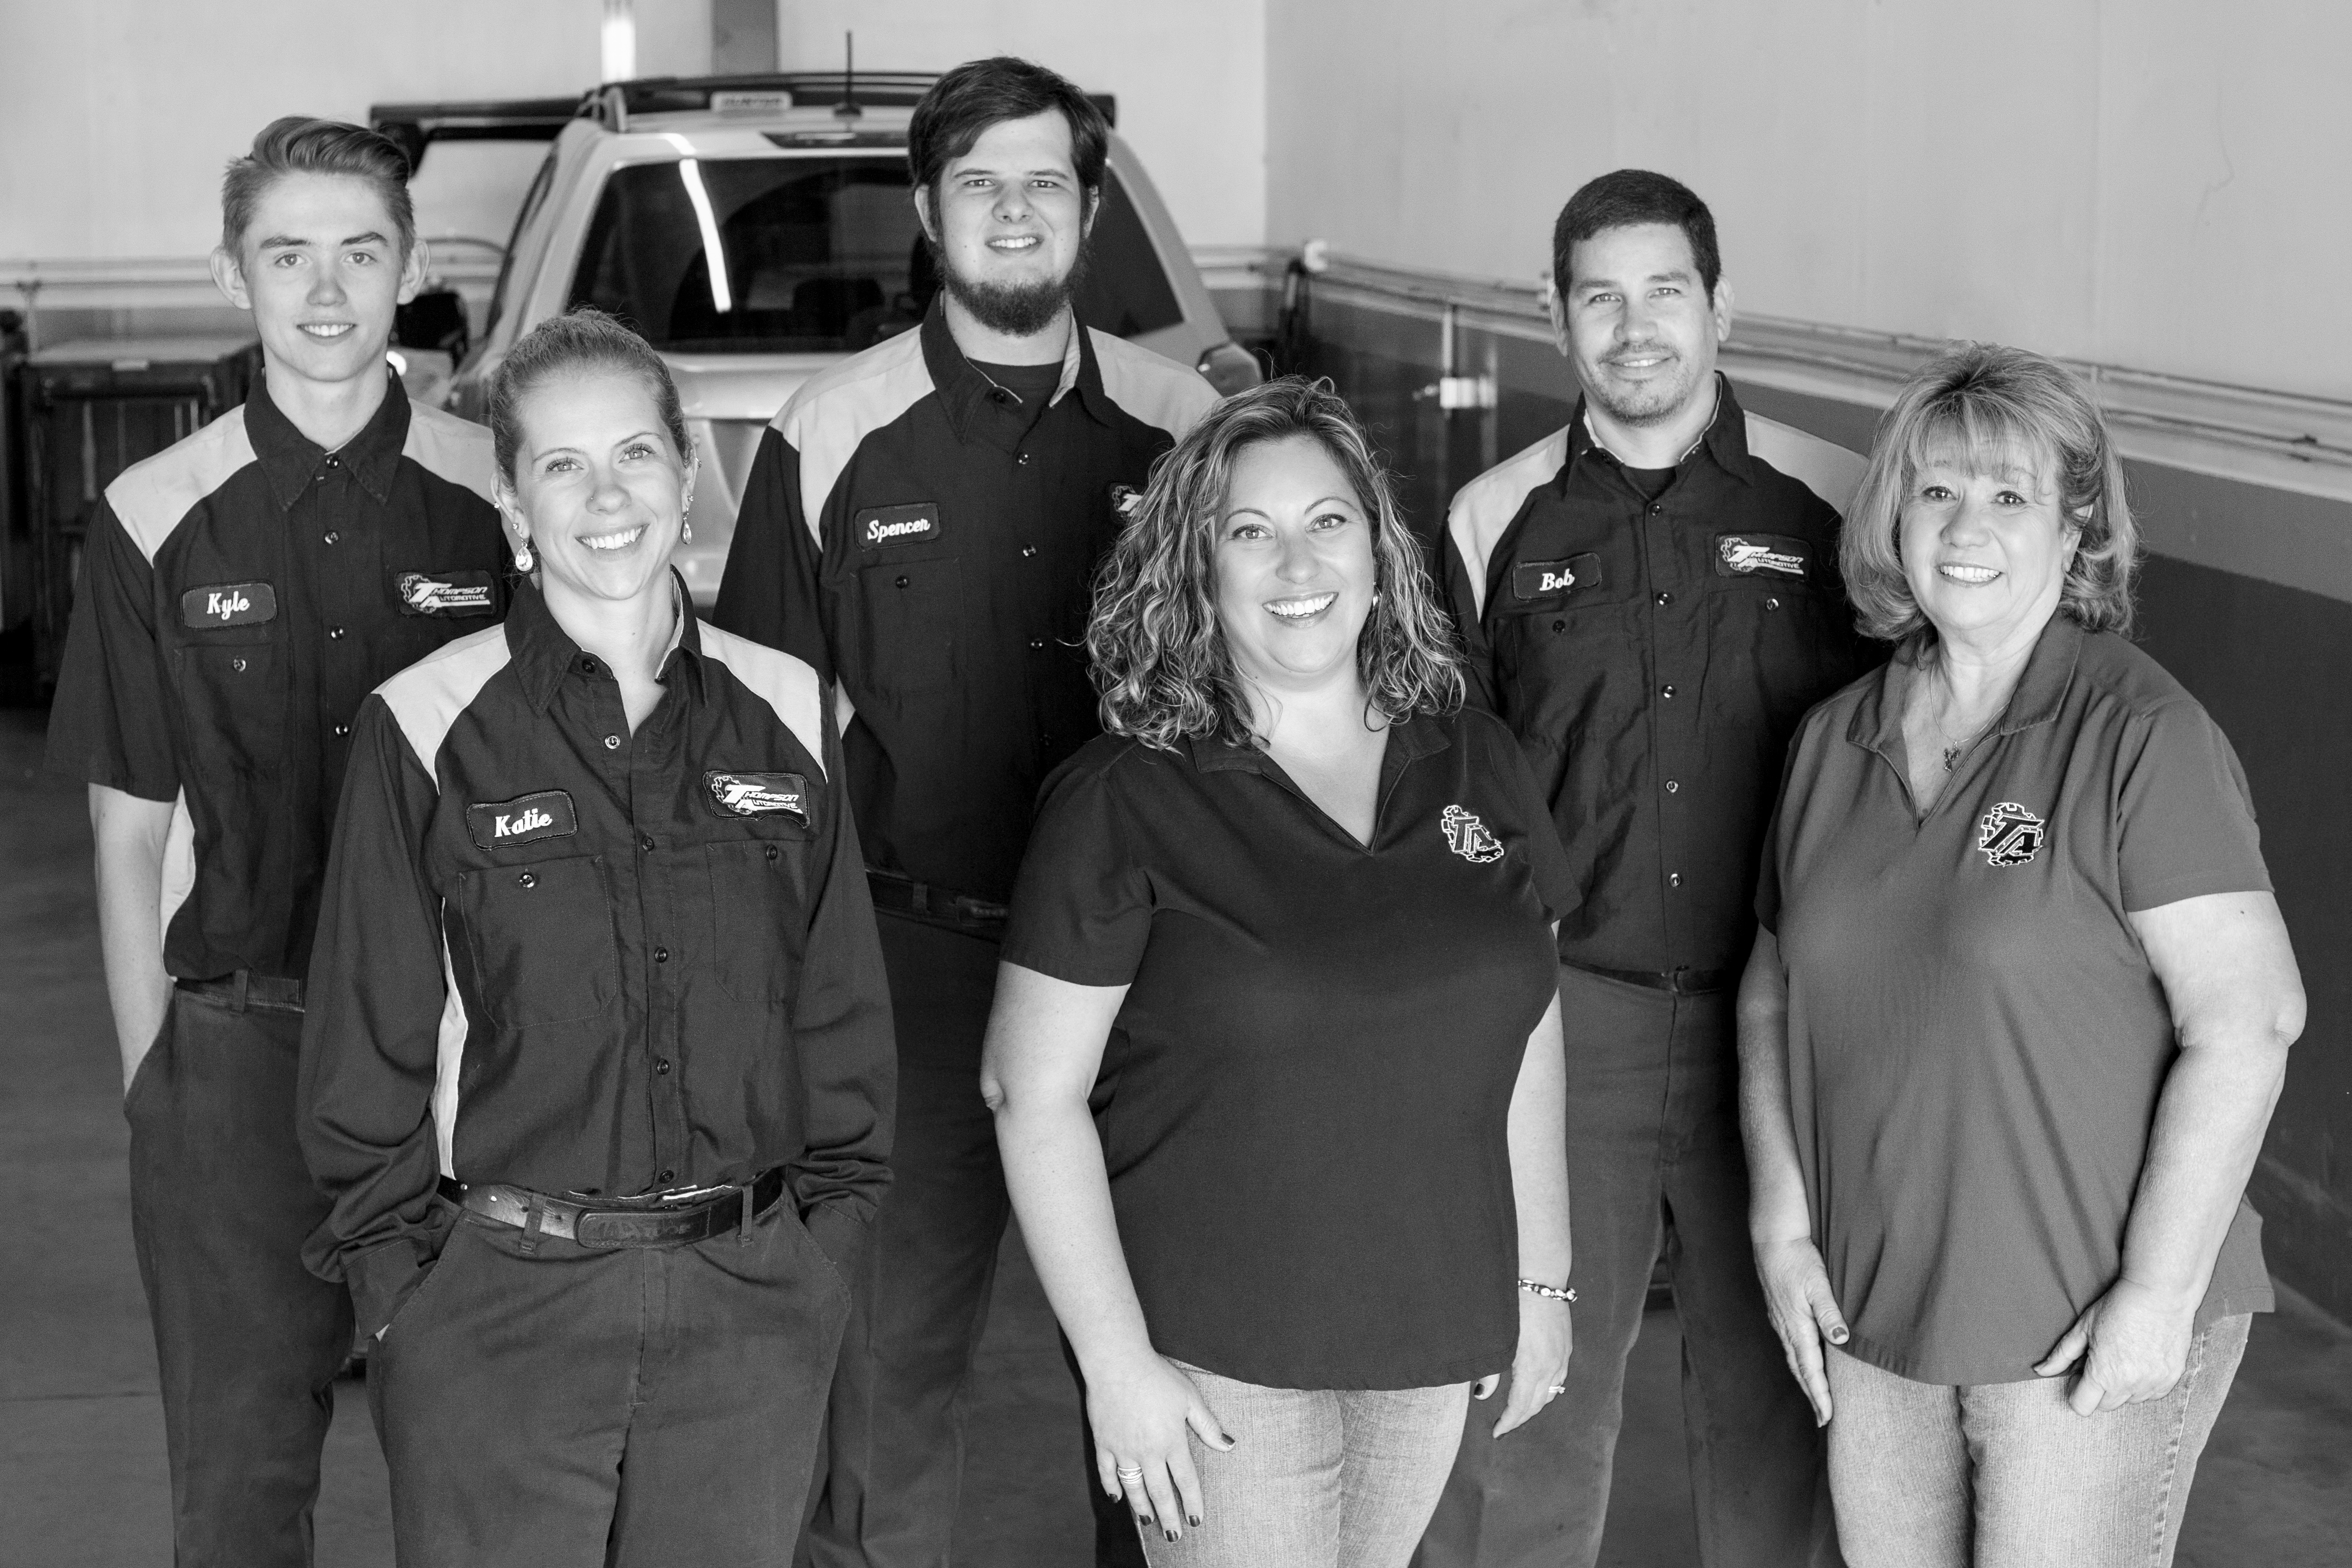 The Crew of Thompson Automotive